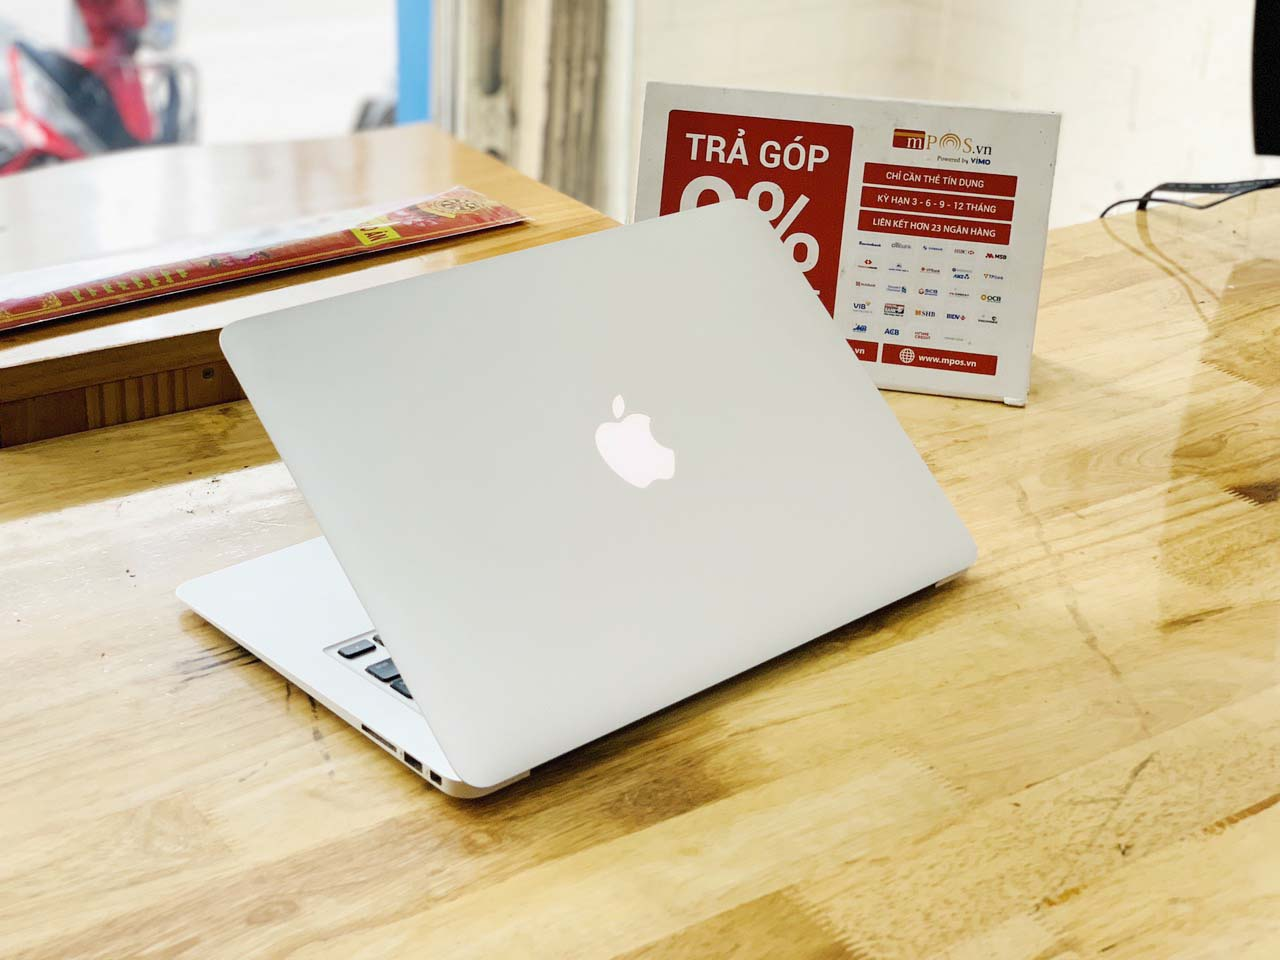 Macbook Air 13-inch 2013